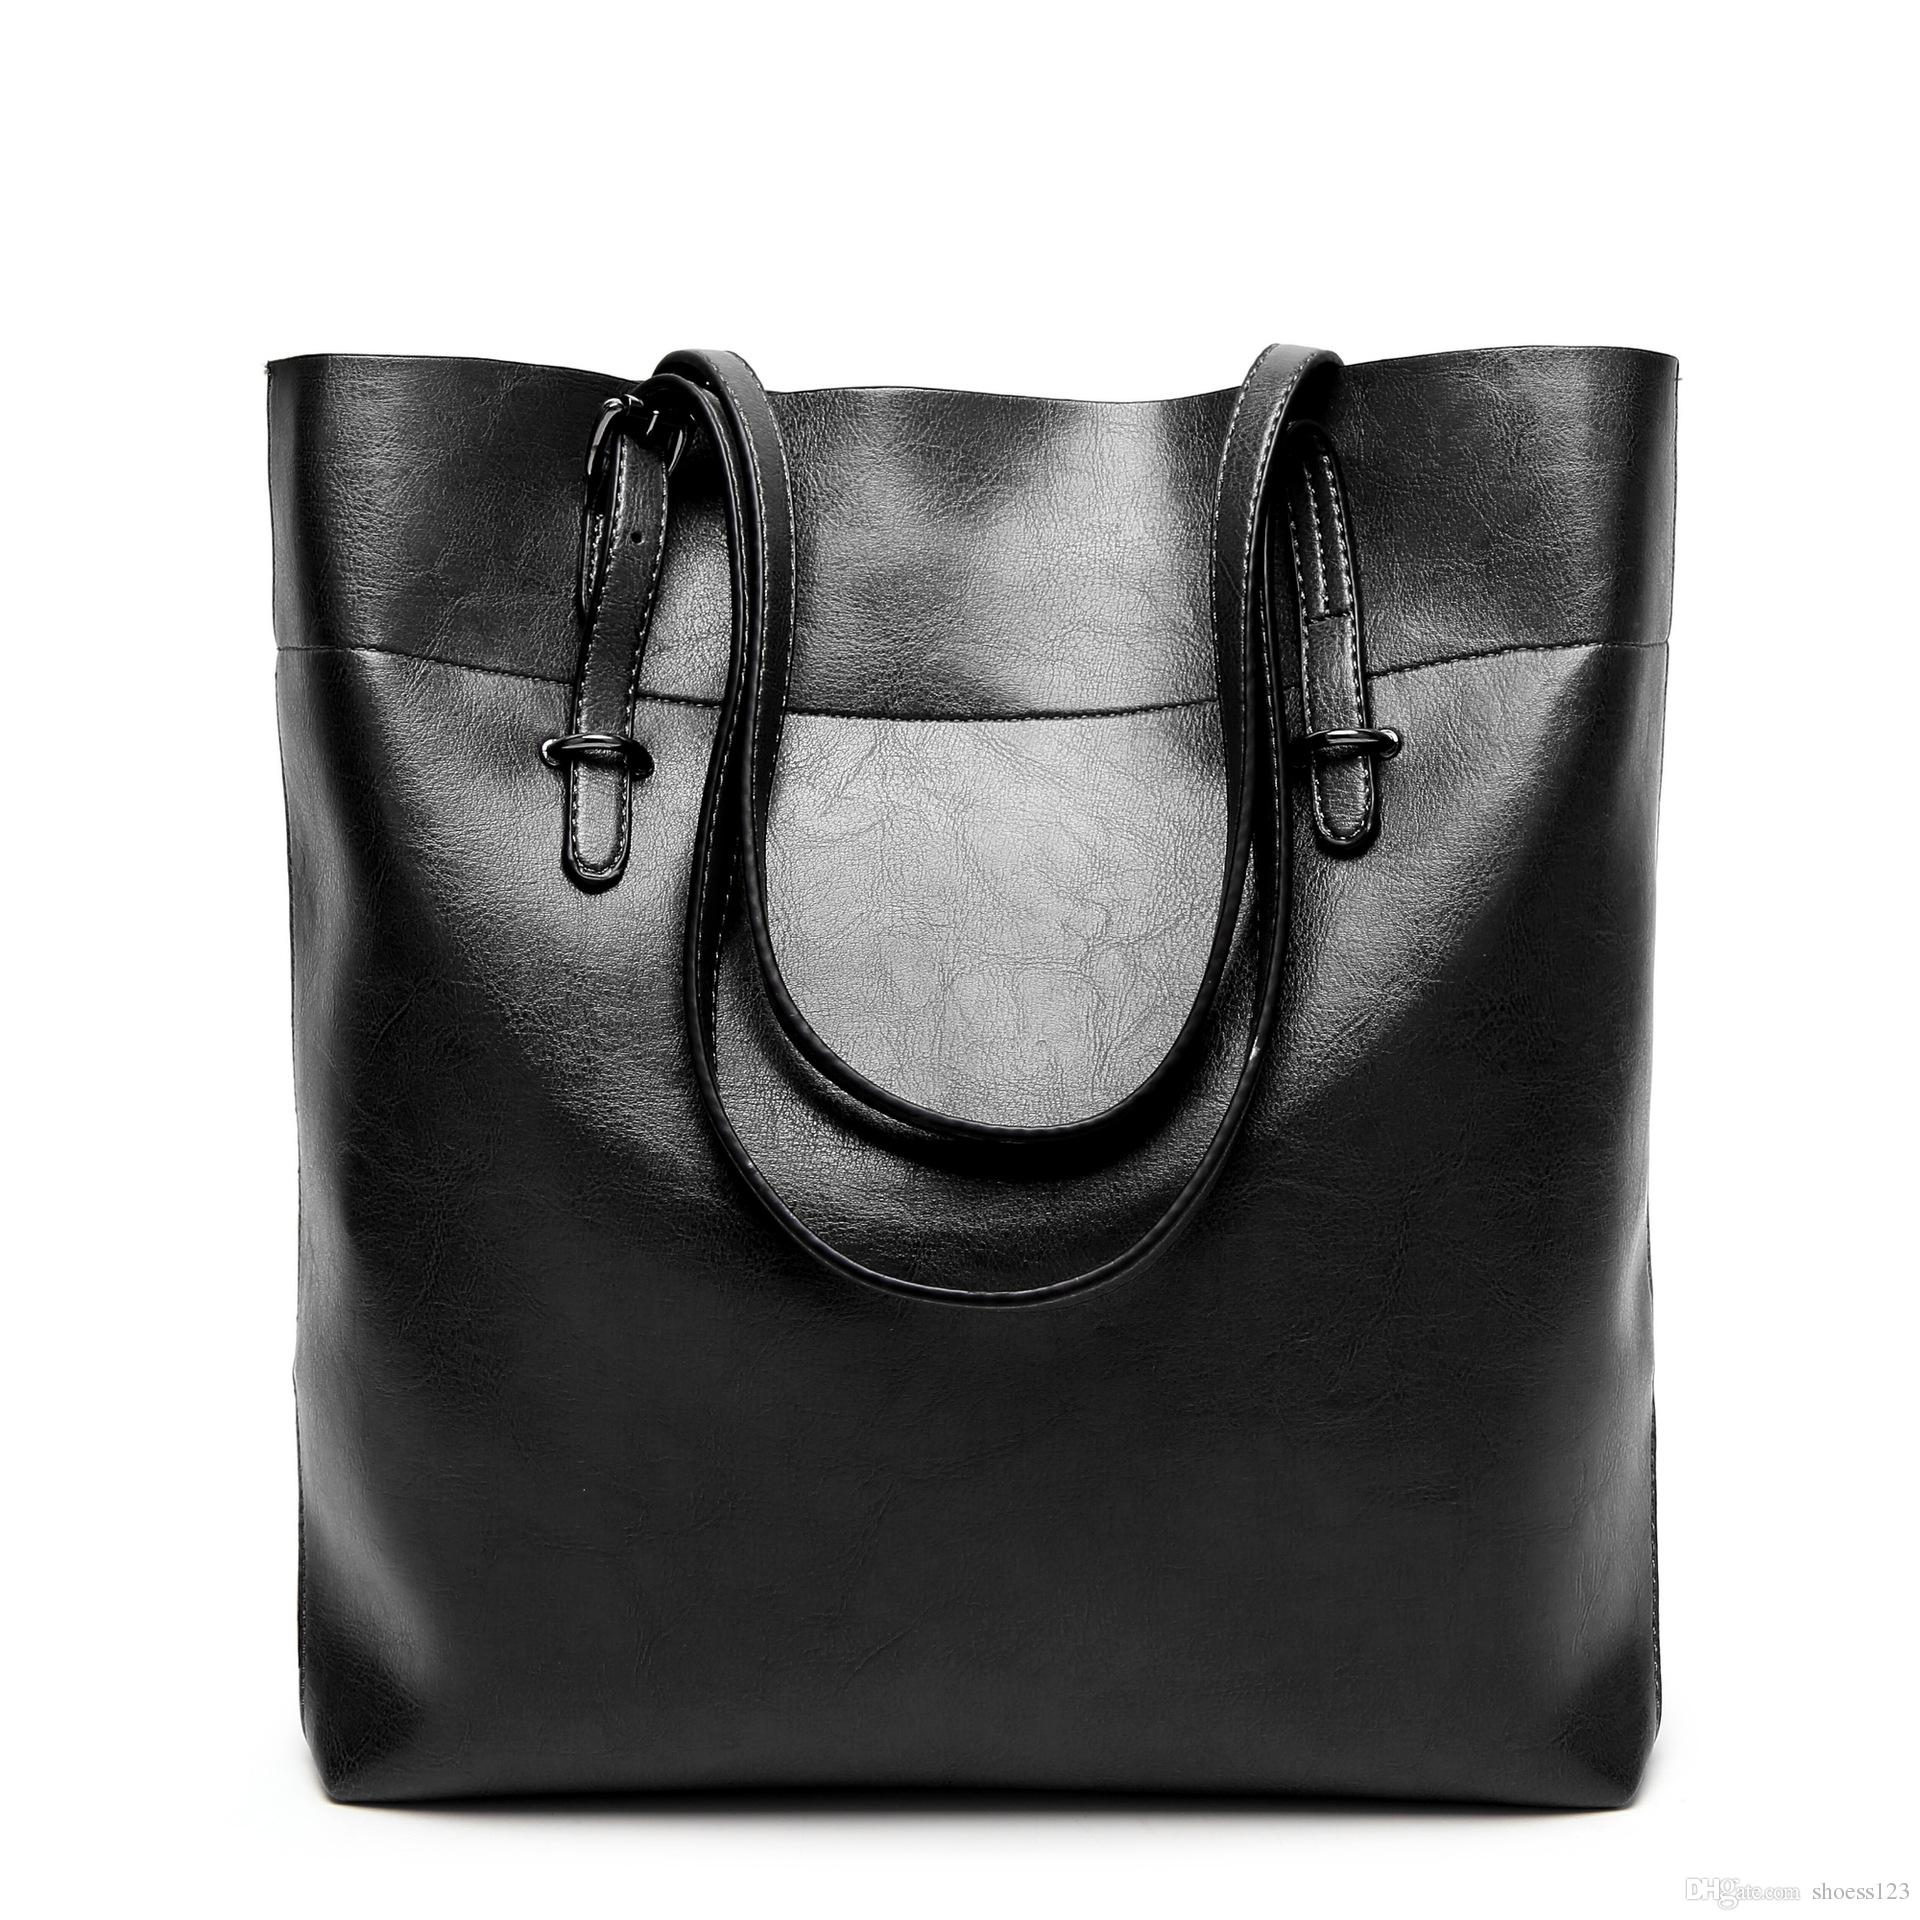 4c56ee7630ce AAA Women Luxury Famous Brand Bag Tote Clutch Bags Genuine Leather Top  Quality Designer Handbags Ladies Fashion Purses Crossbody Bag A304 Black  Leather ...